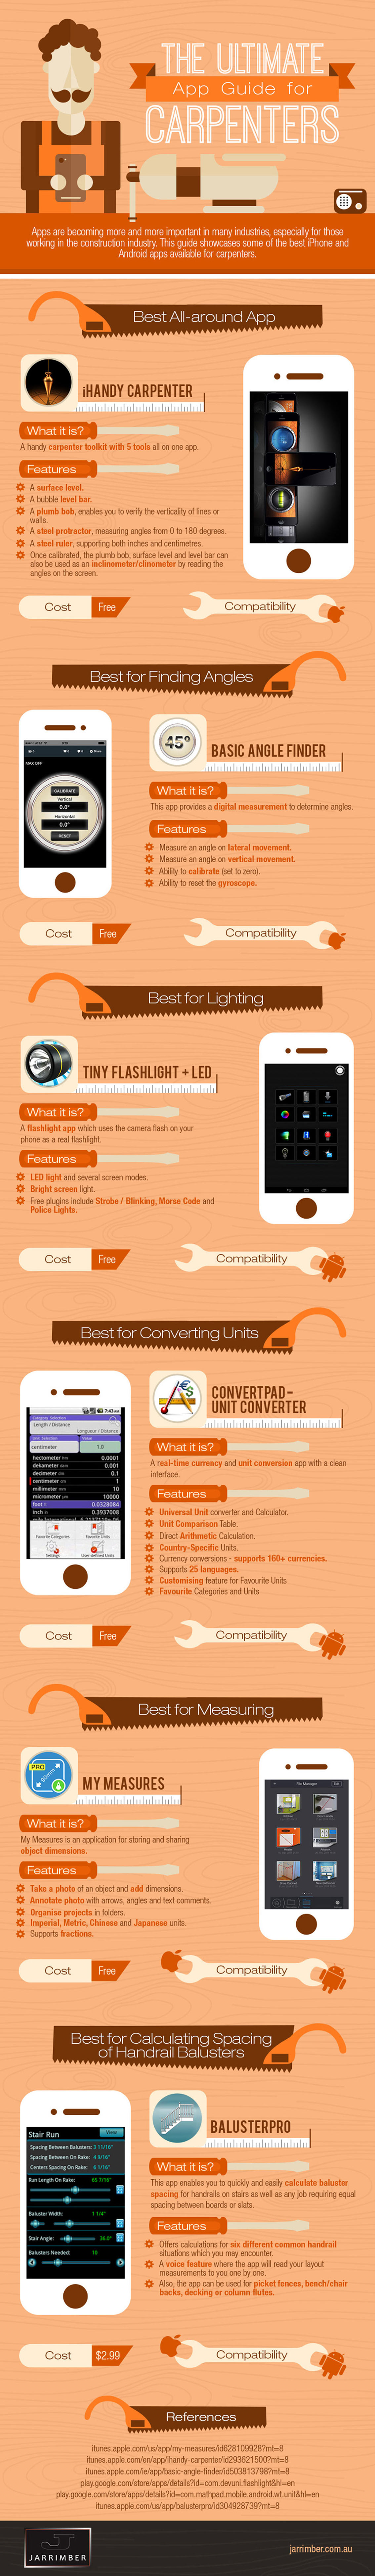 The Ultimate App Guide for Carpenters Infographic